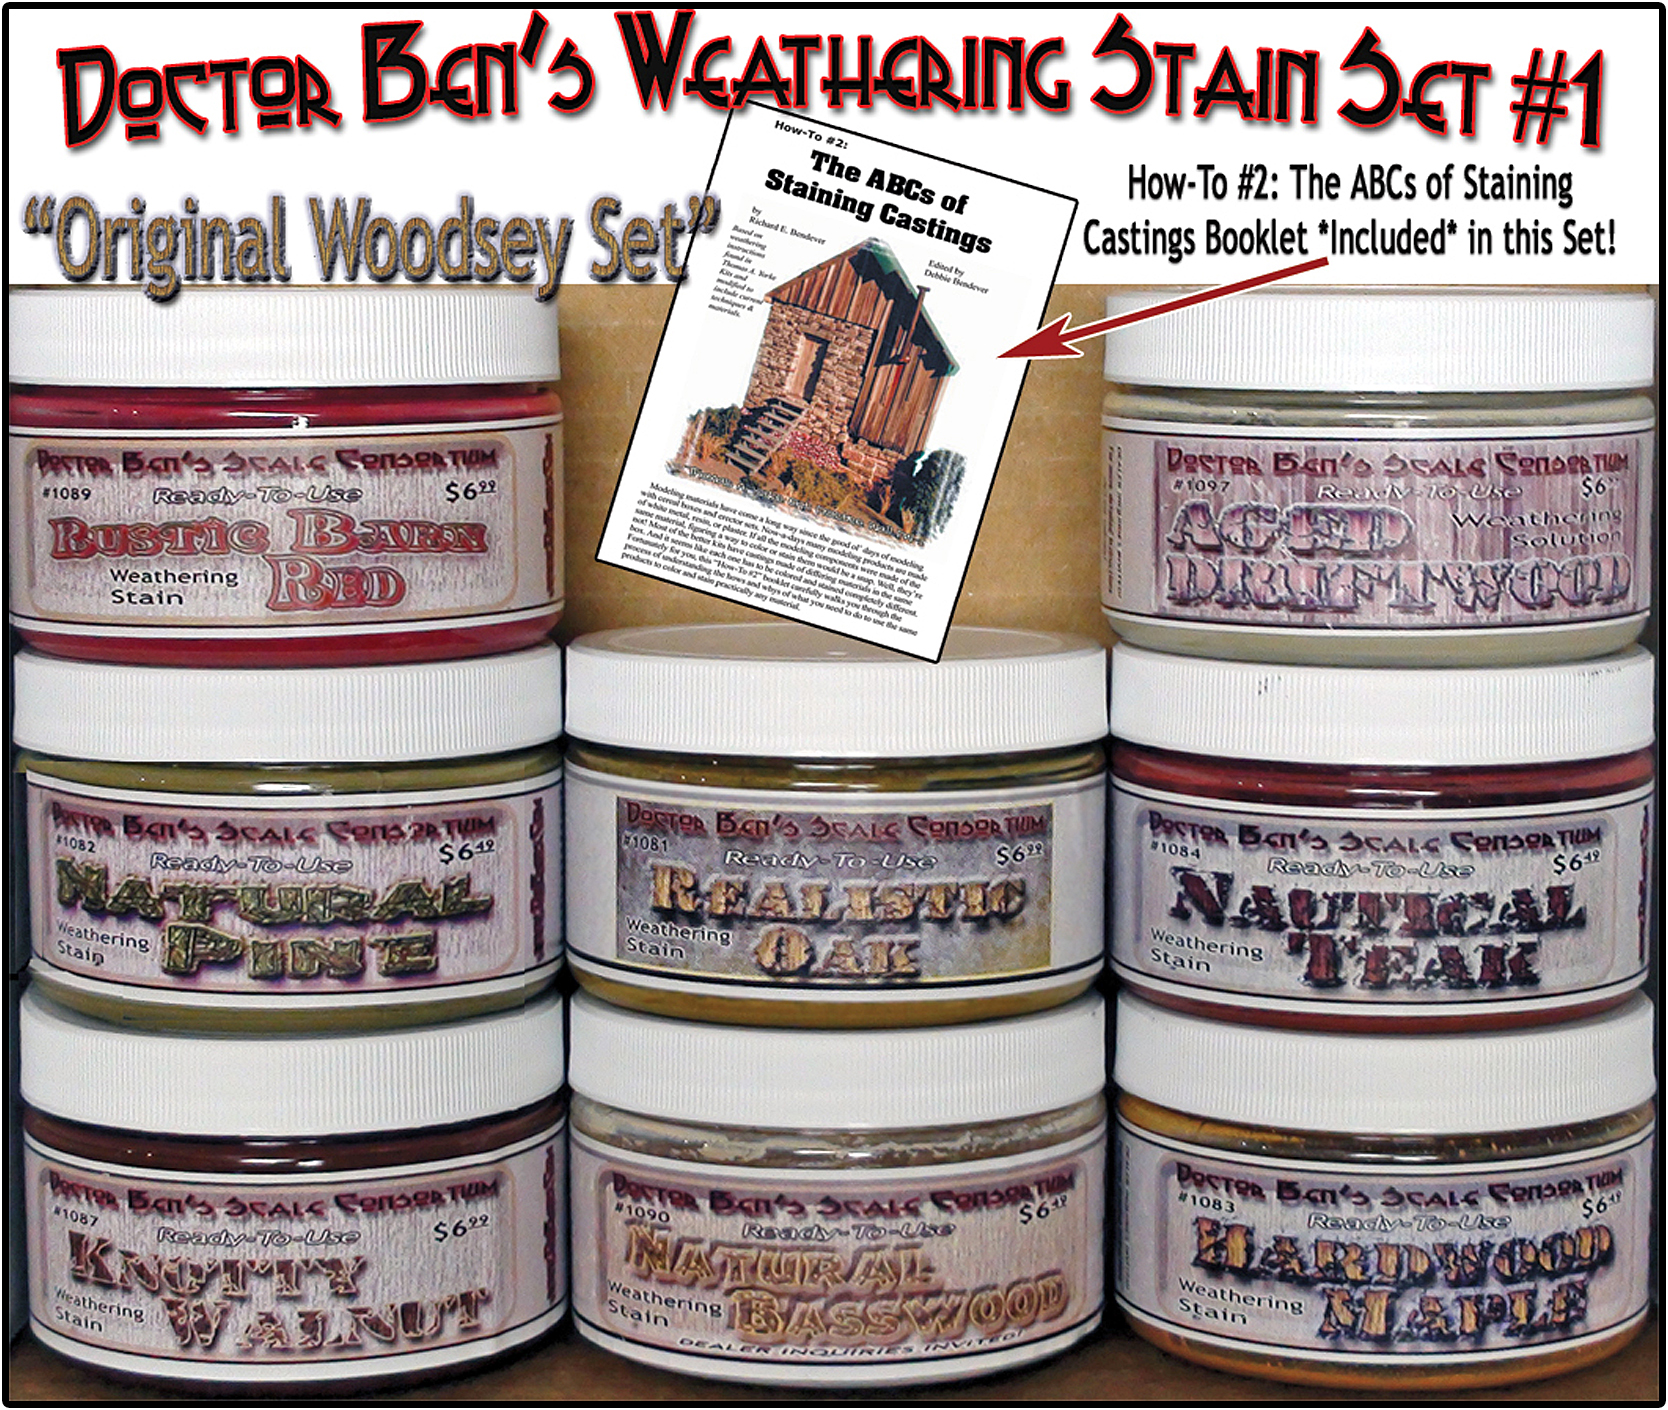 Doctor Ben's 8-Color Wood Stain Set #1